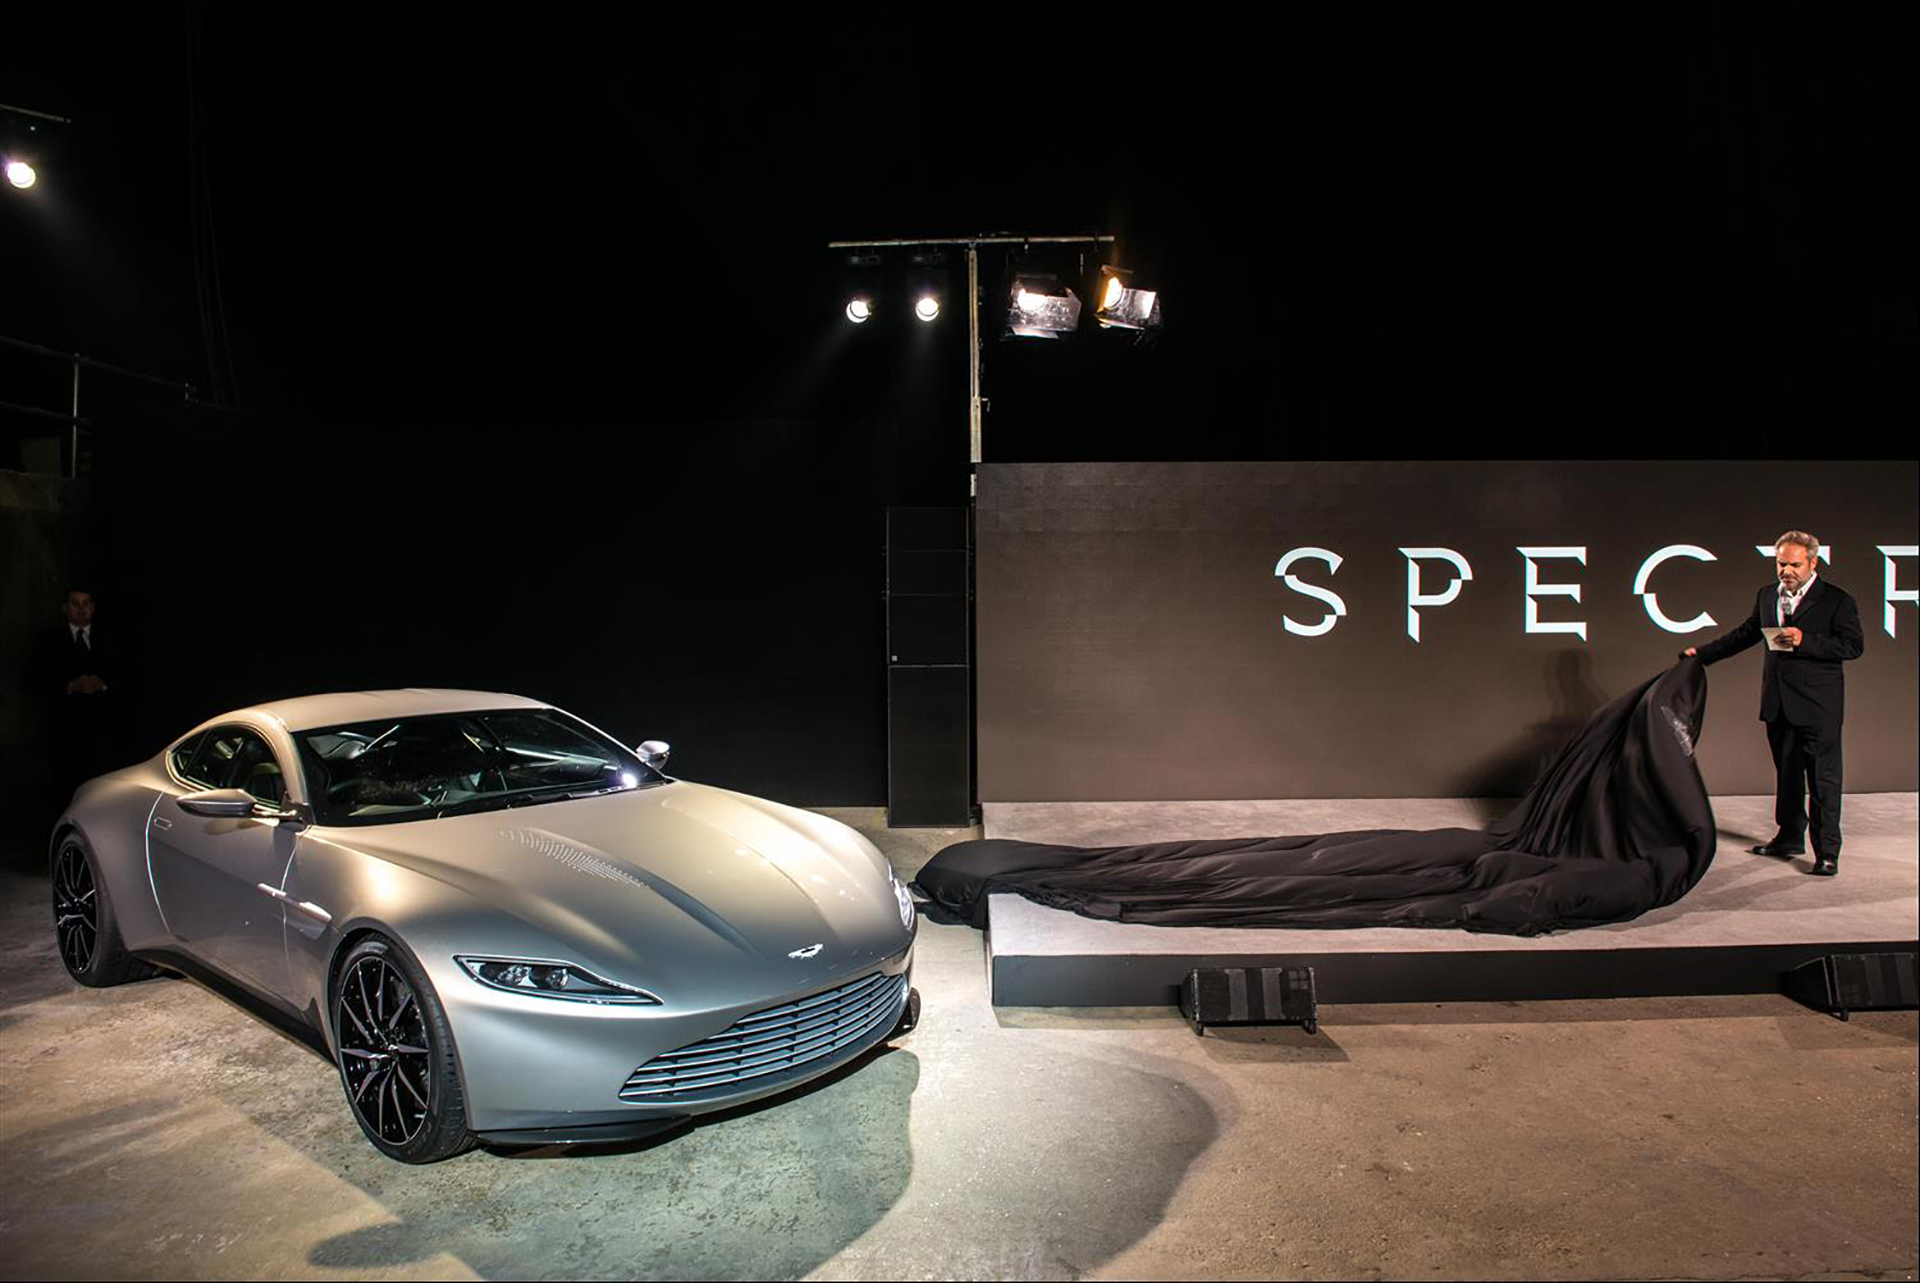 Aston Martin DB10 - Spectre - Announcement 2014